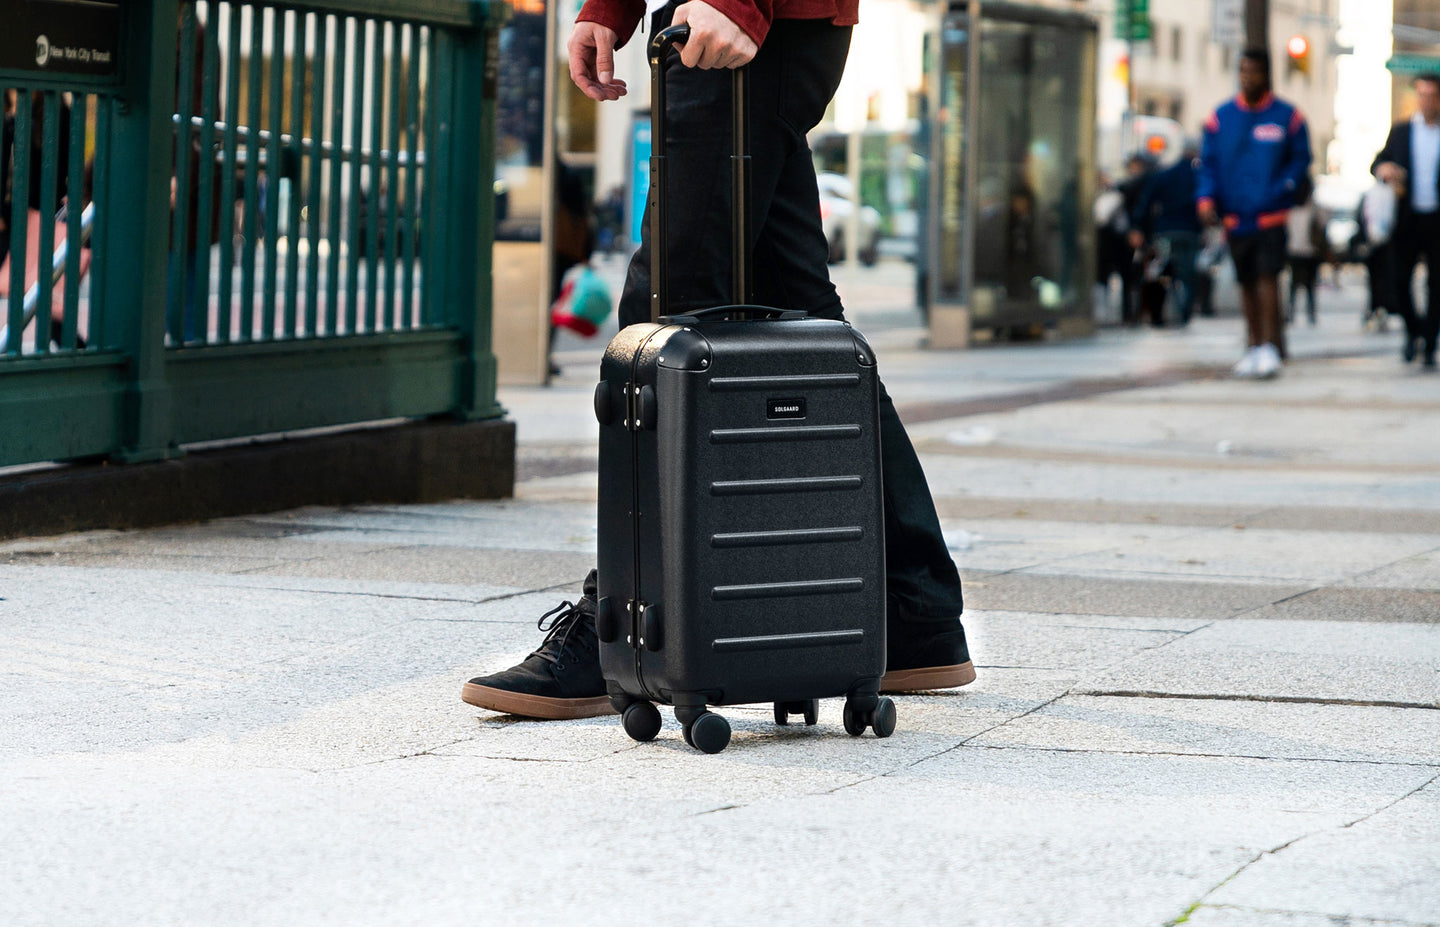 Premium, sustainable travel luggage, bags, and accessories for global citizens